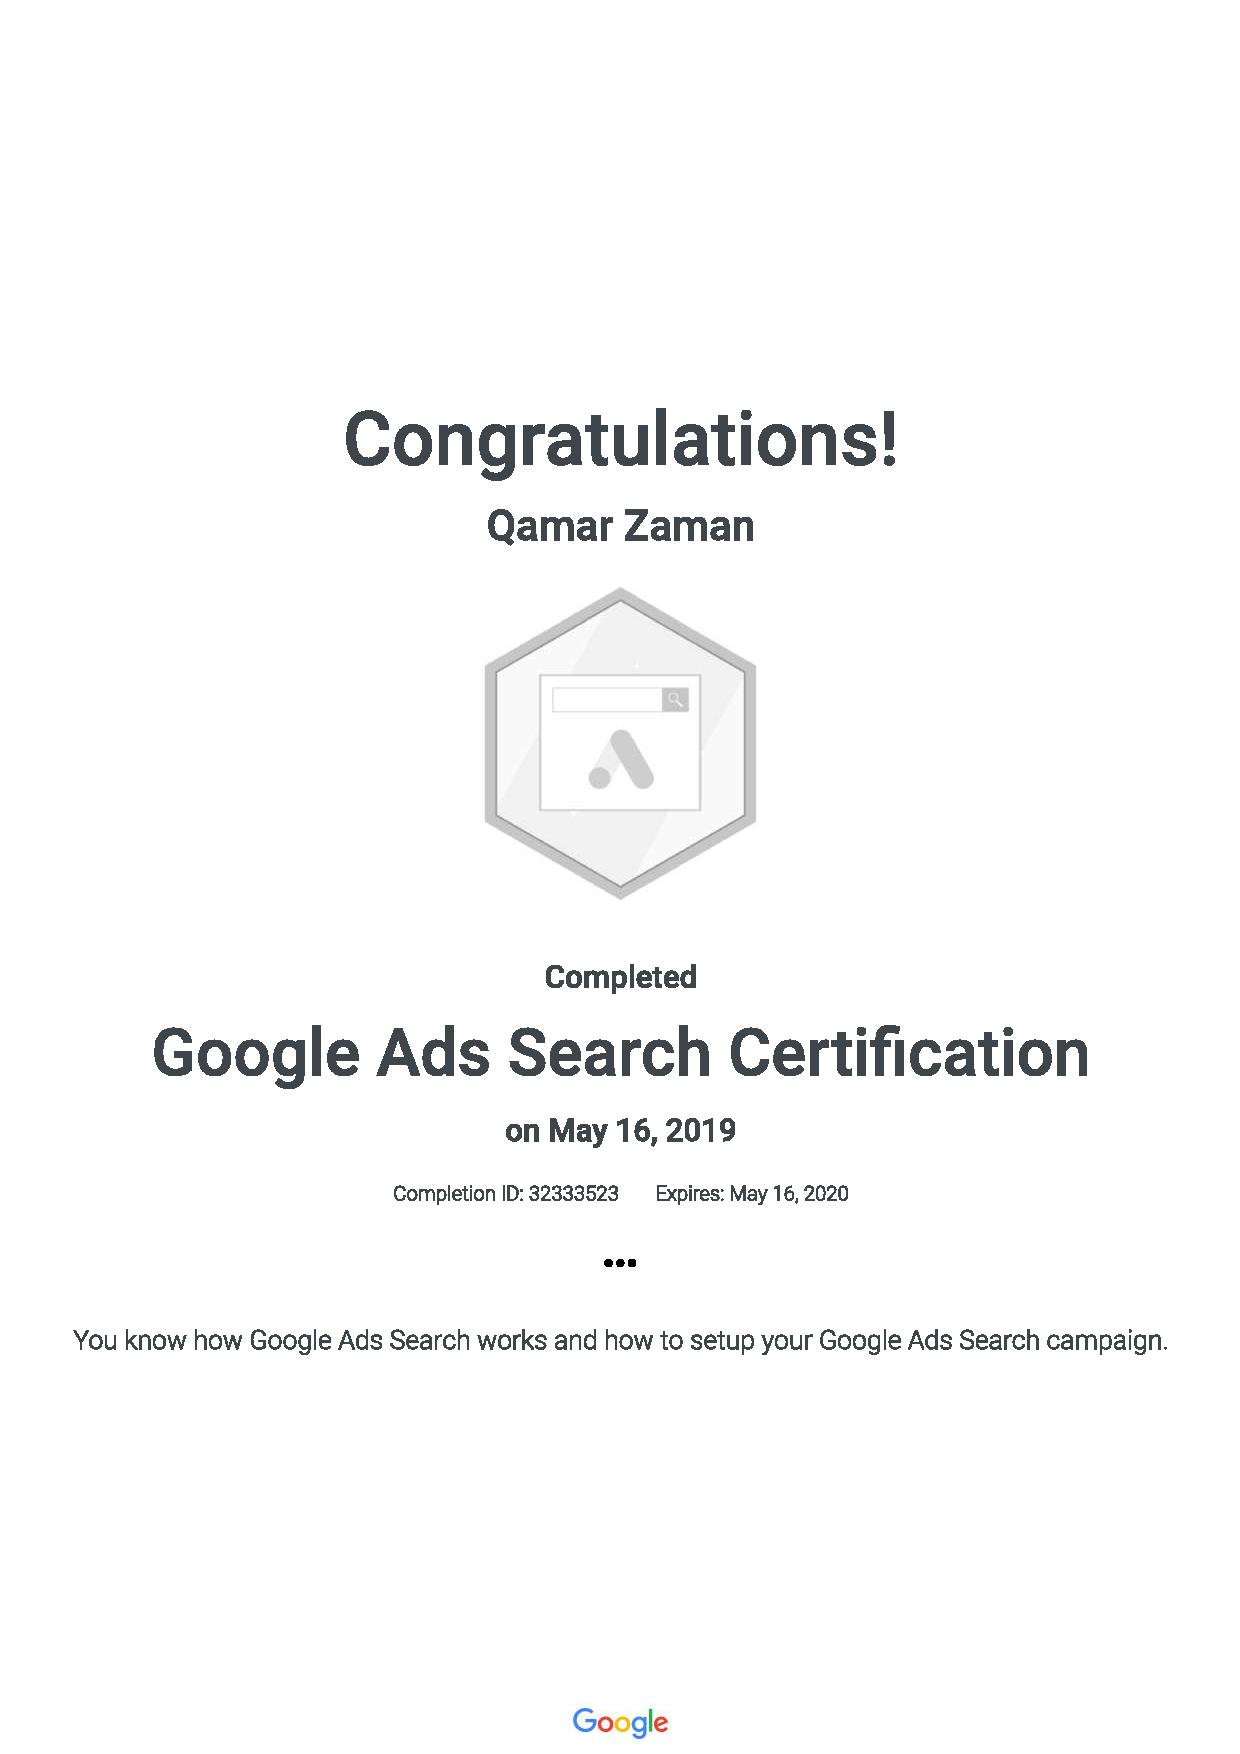 Google Ads Search Certification 201905